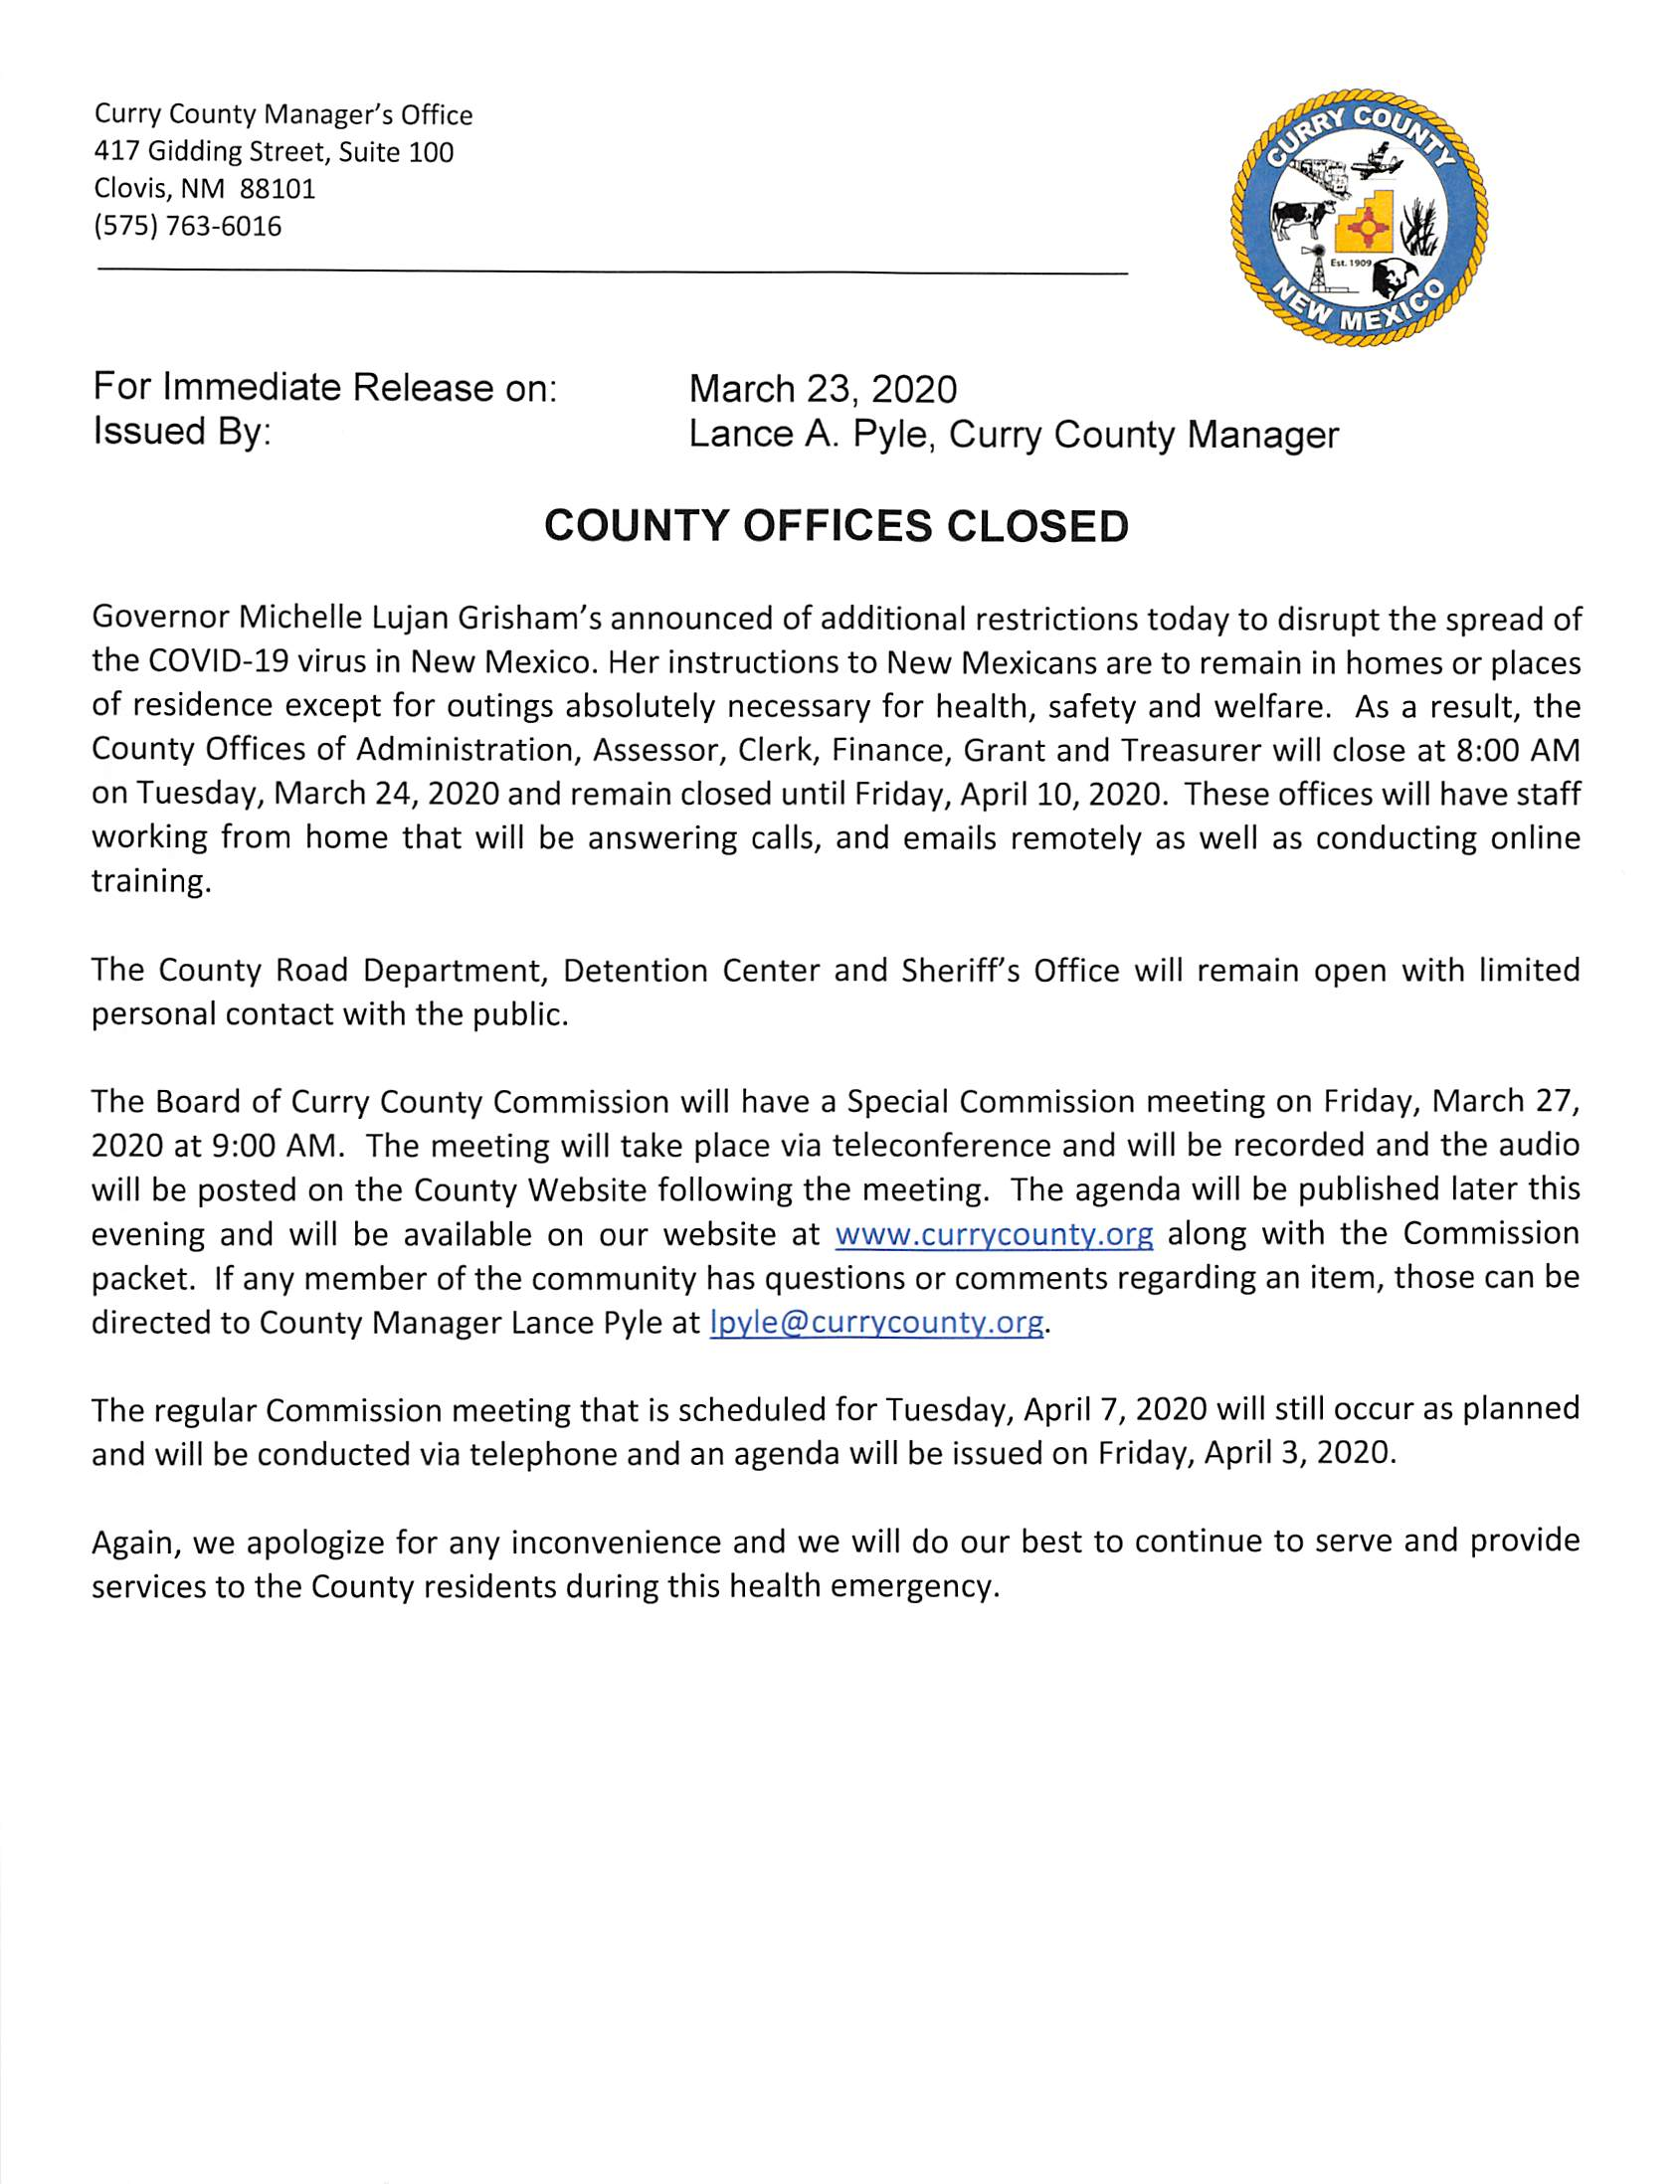 Press Release - Offices Closed